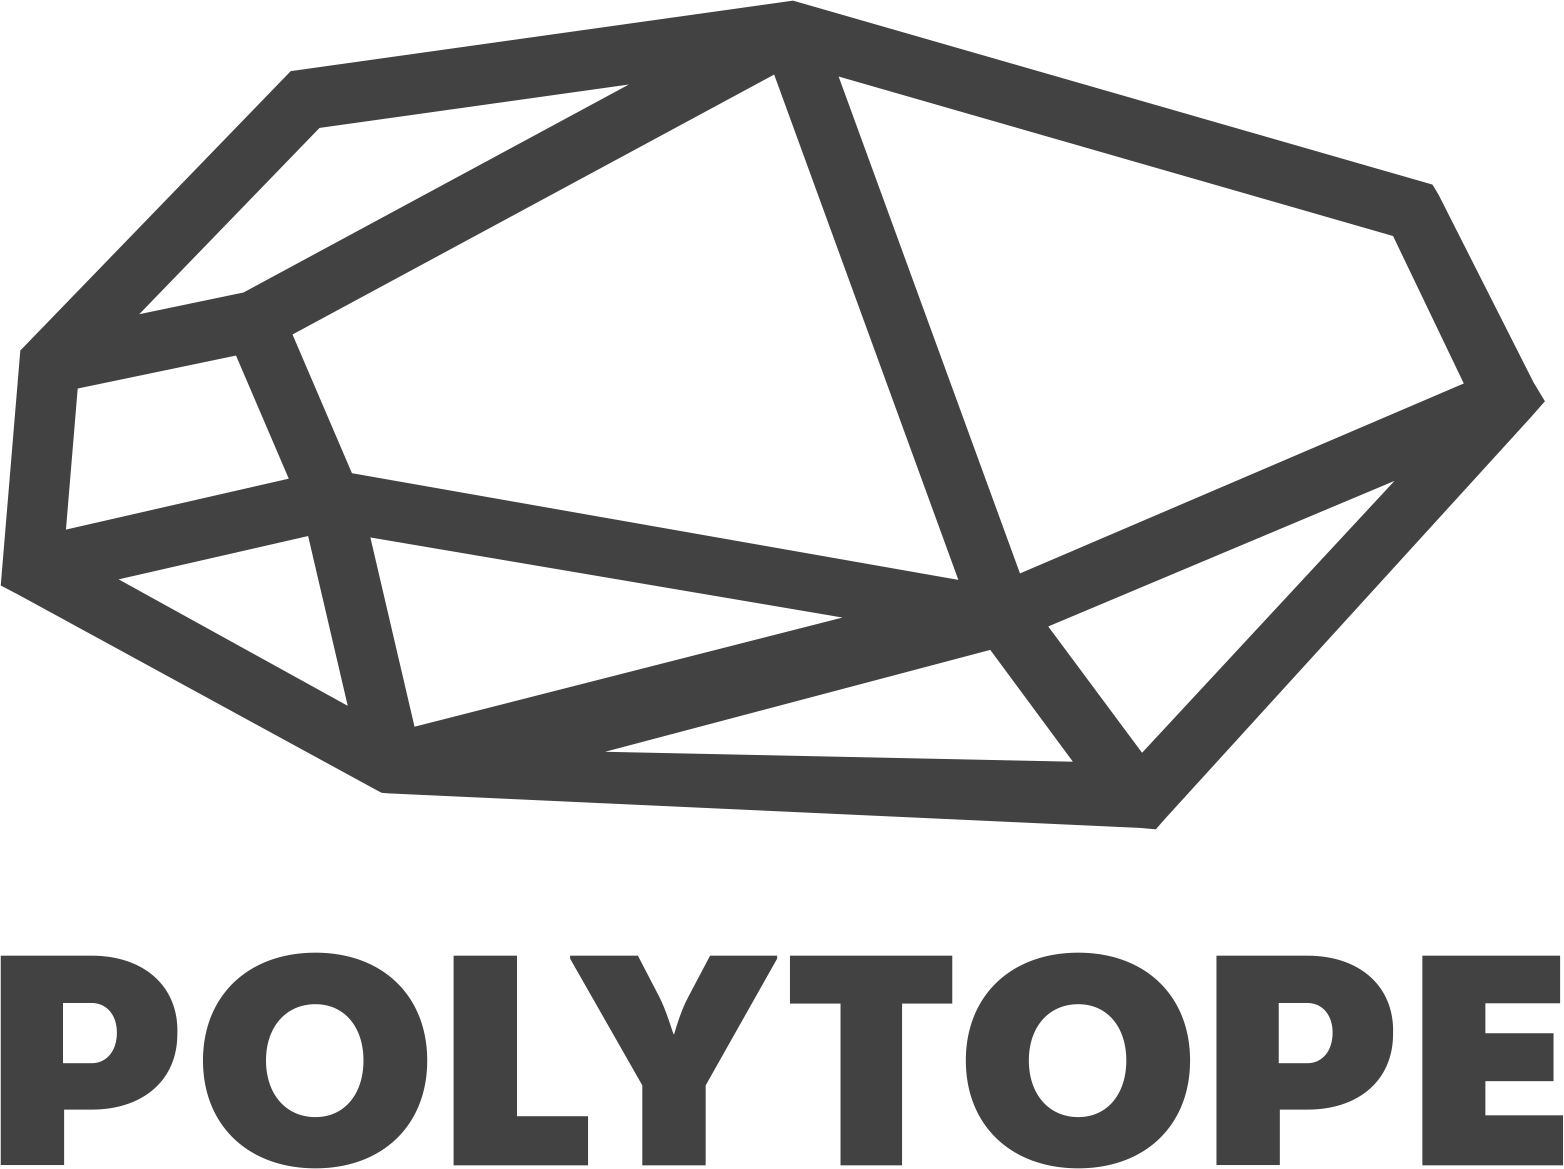 POLYTOPE